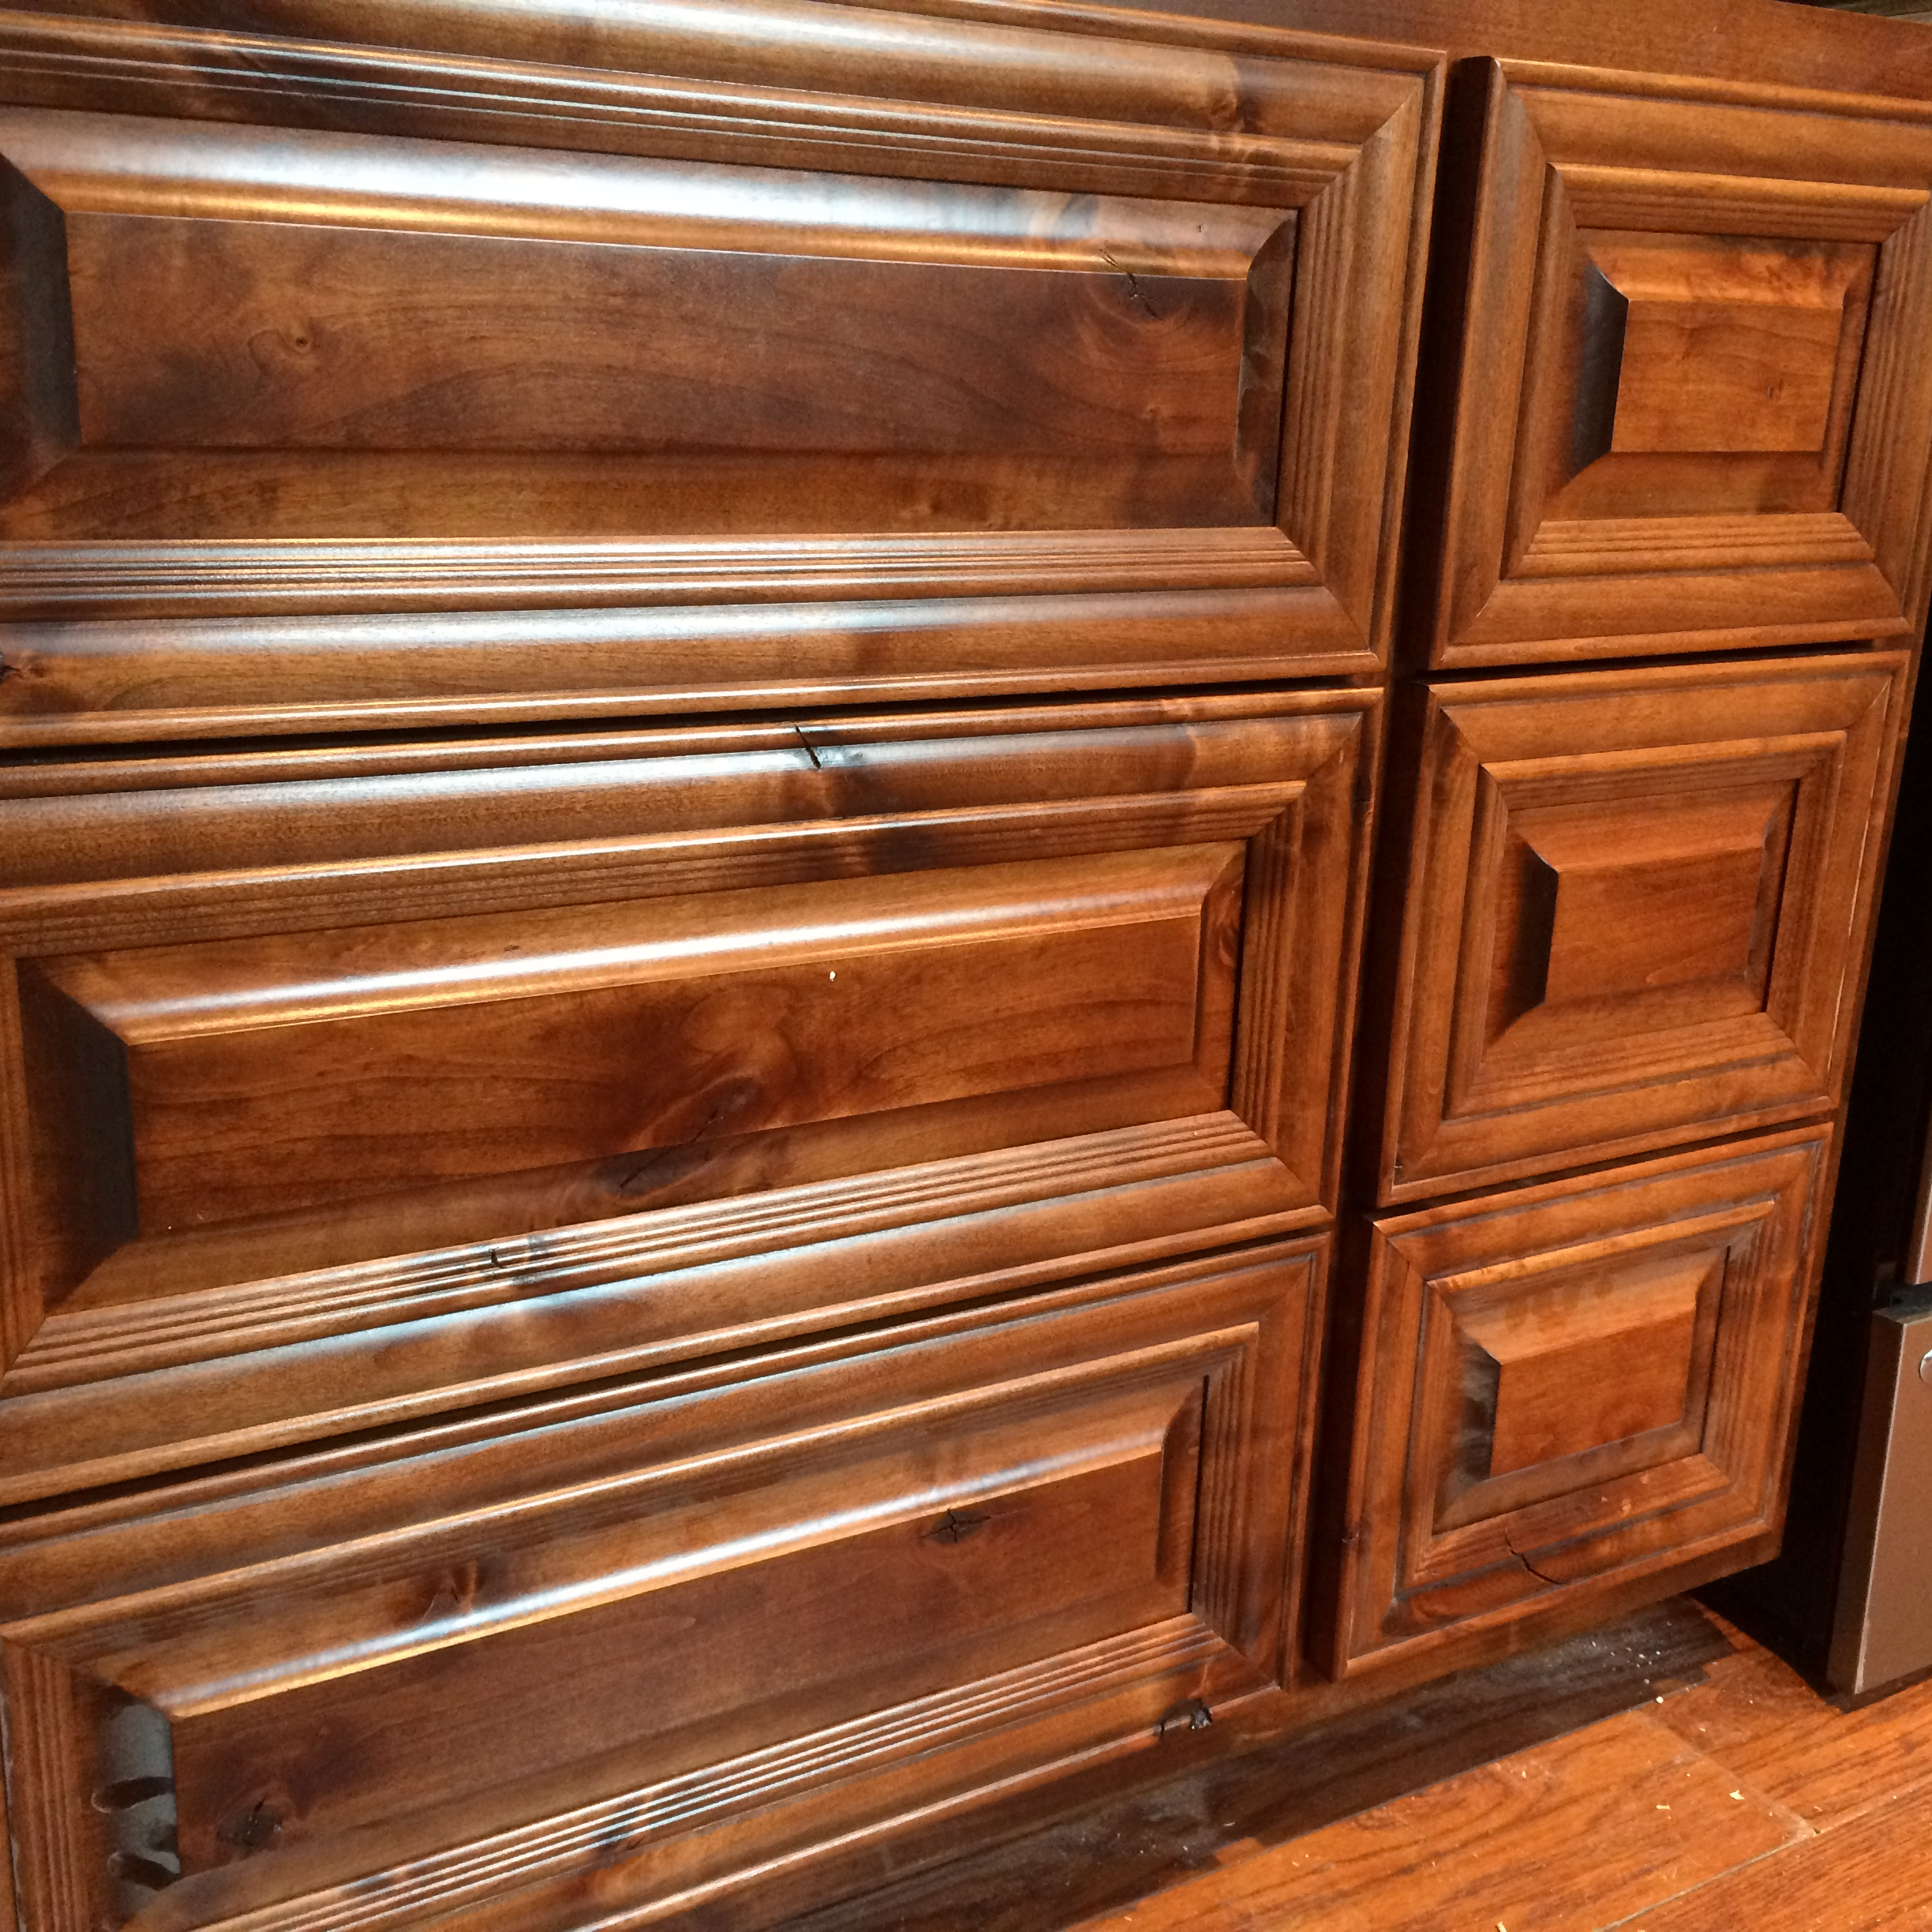 Six drawer Knotty Alder Base cabinet